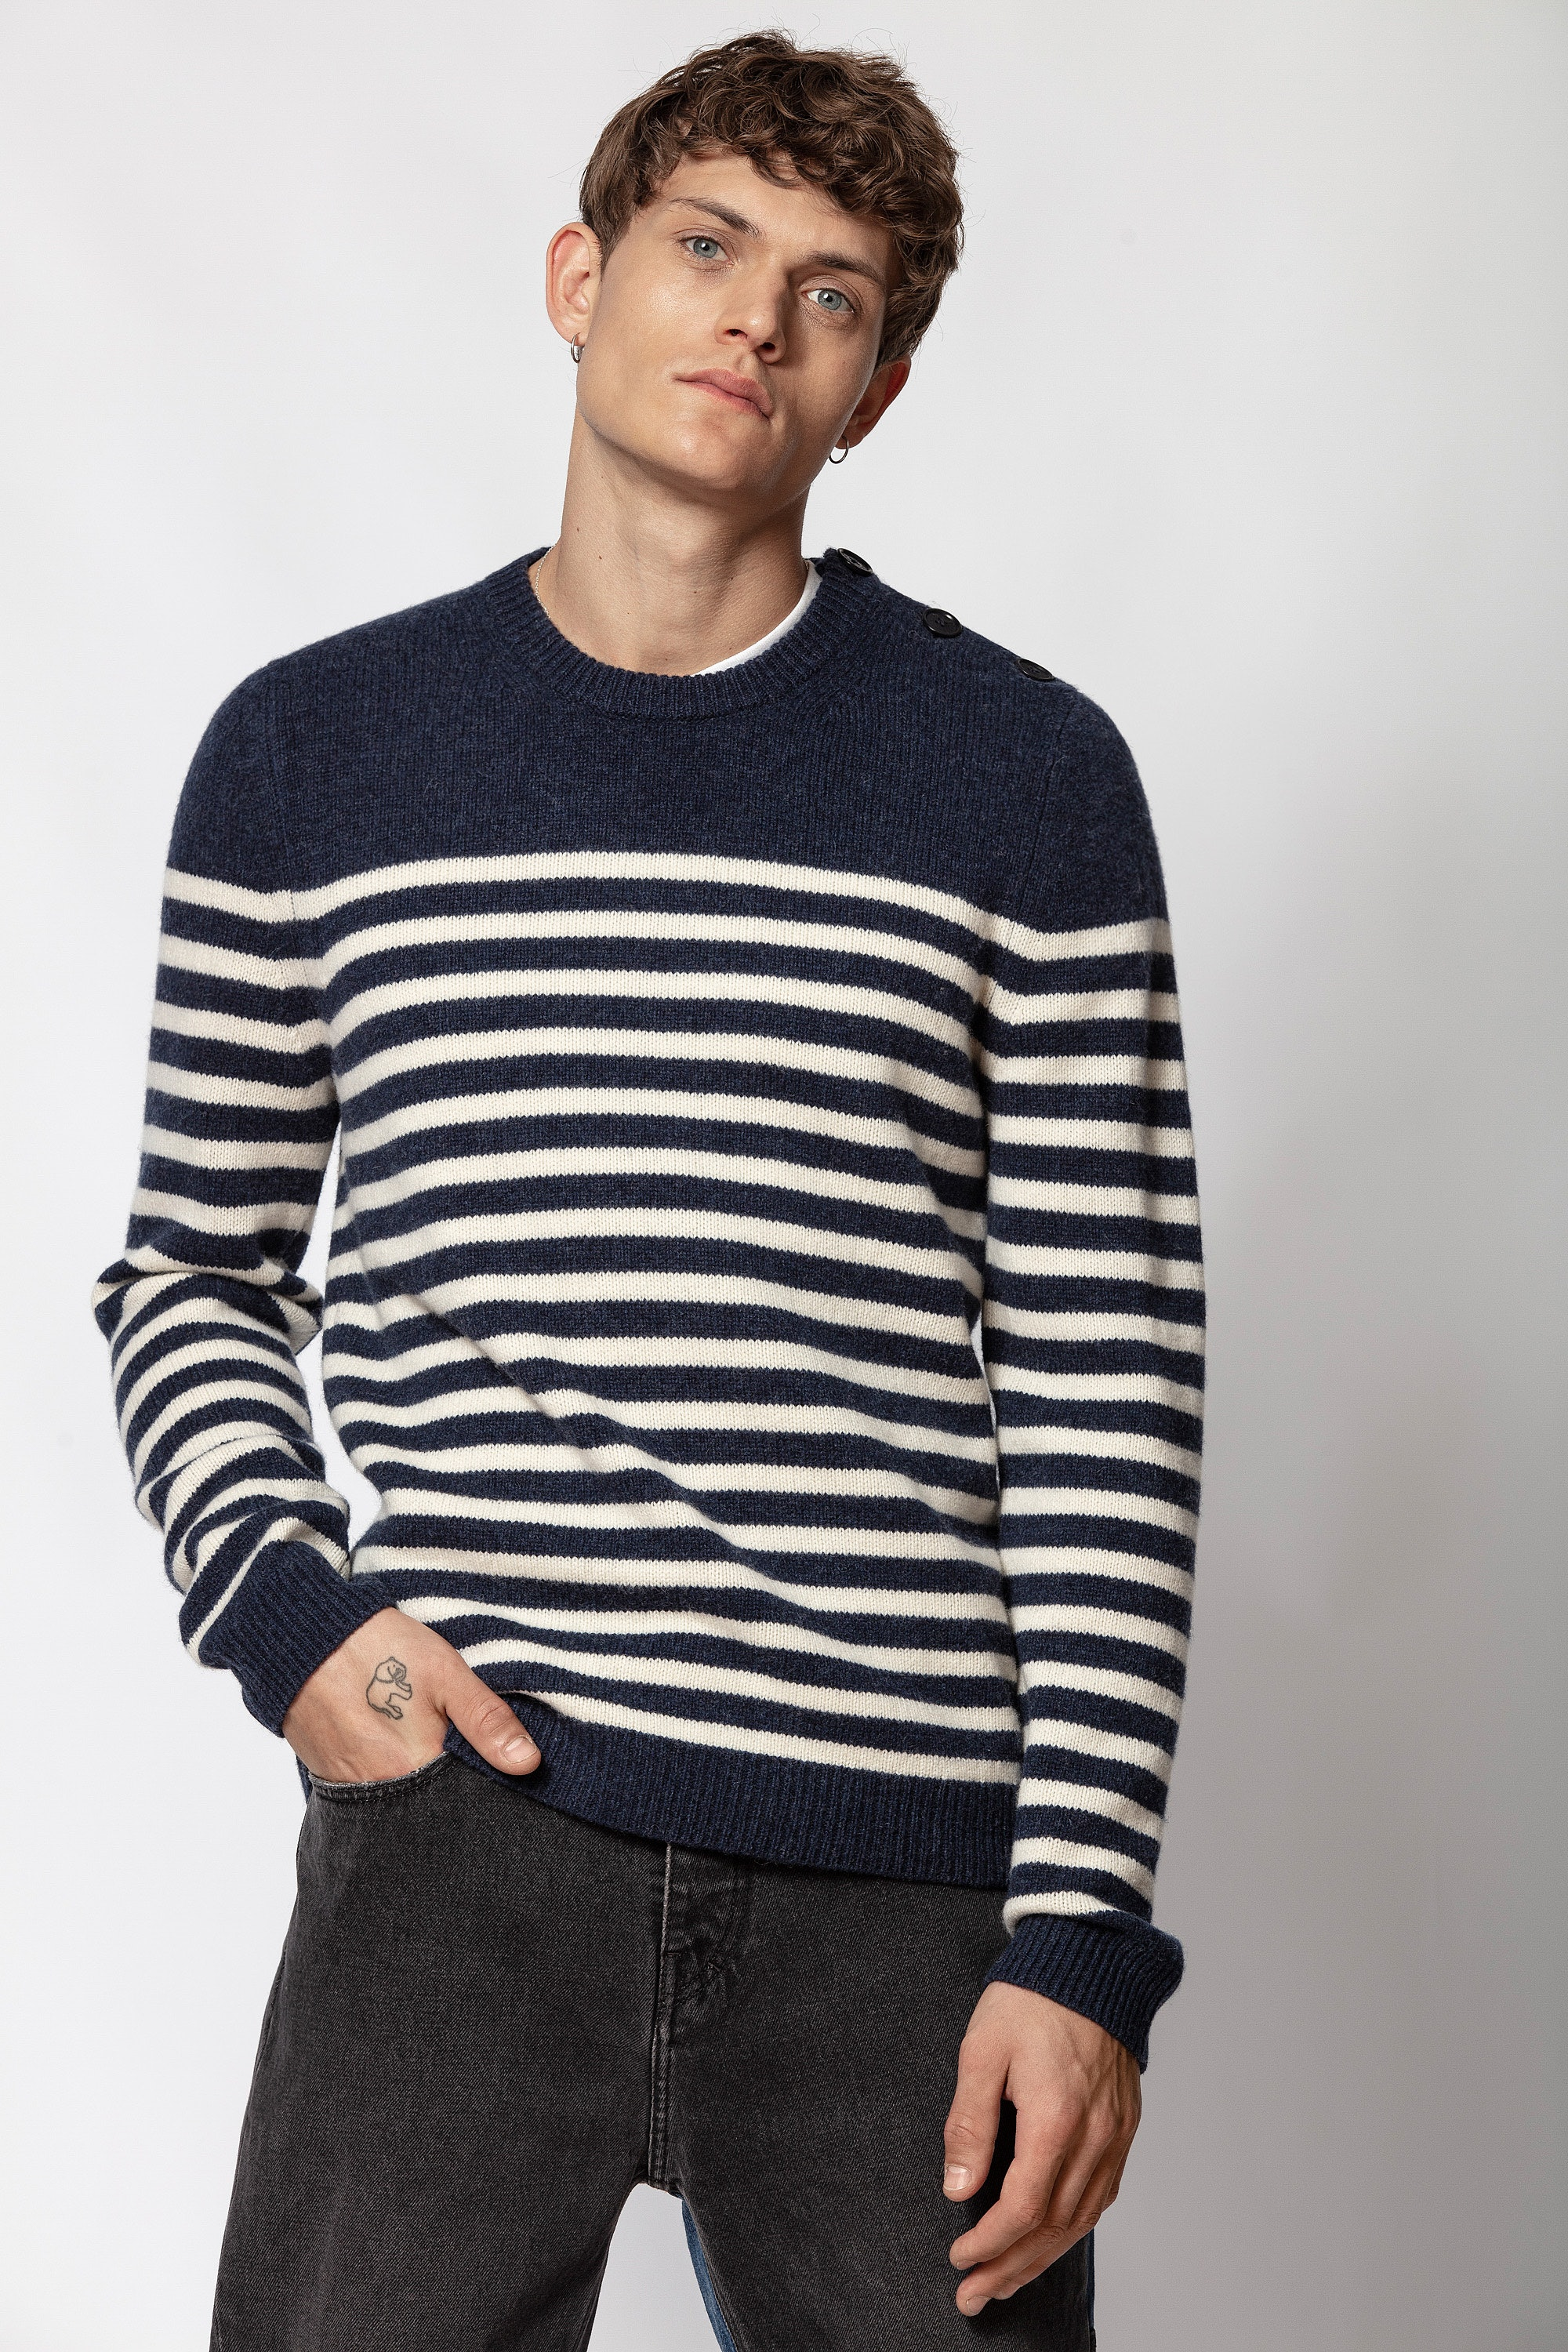 Jeremy Stripes Sweater